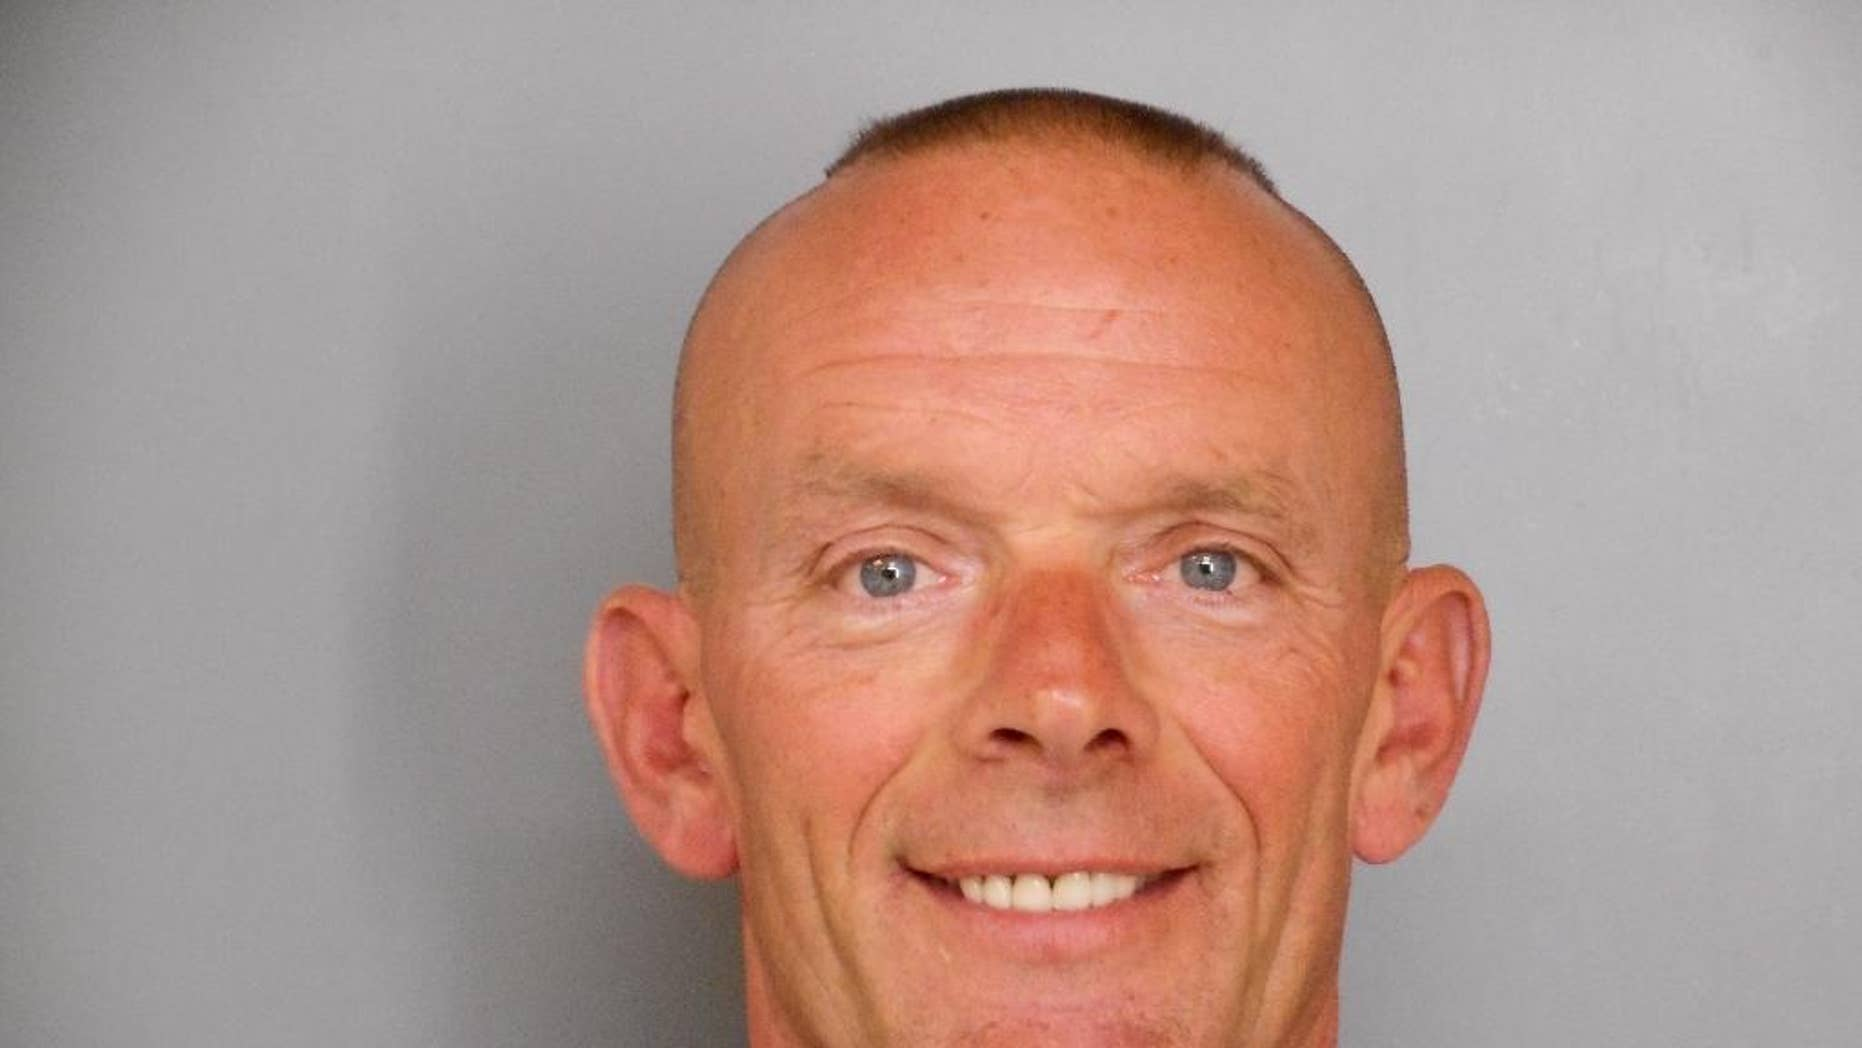 """FILE -  This undated file photo provided by the Fox Lake Police Department shows Lt. Charles Joseph Gliniewicz, was shot and died Tuesday, Sept. 1, 2015, in Fox Lake, Ill. Coroner Dr. Thomas Rudd said Wednesday Sept. 9, 2015 that Gliniewicz, who died last week suffered a """"single devastating"""" gunshot wound, but he can't rule whether it was a homicide, suicide or accident. (Fox Lake Police Department photo via AP, File)"""